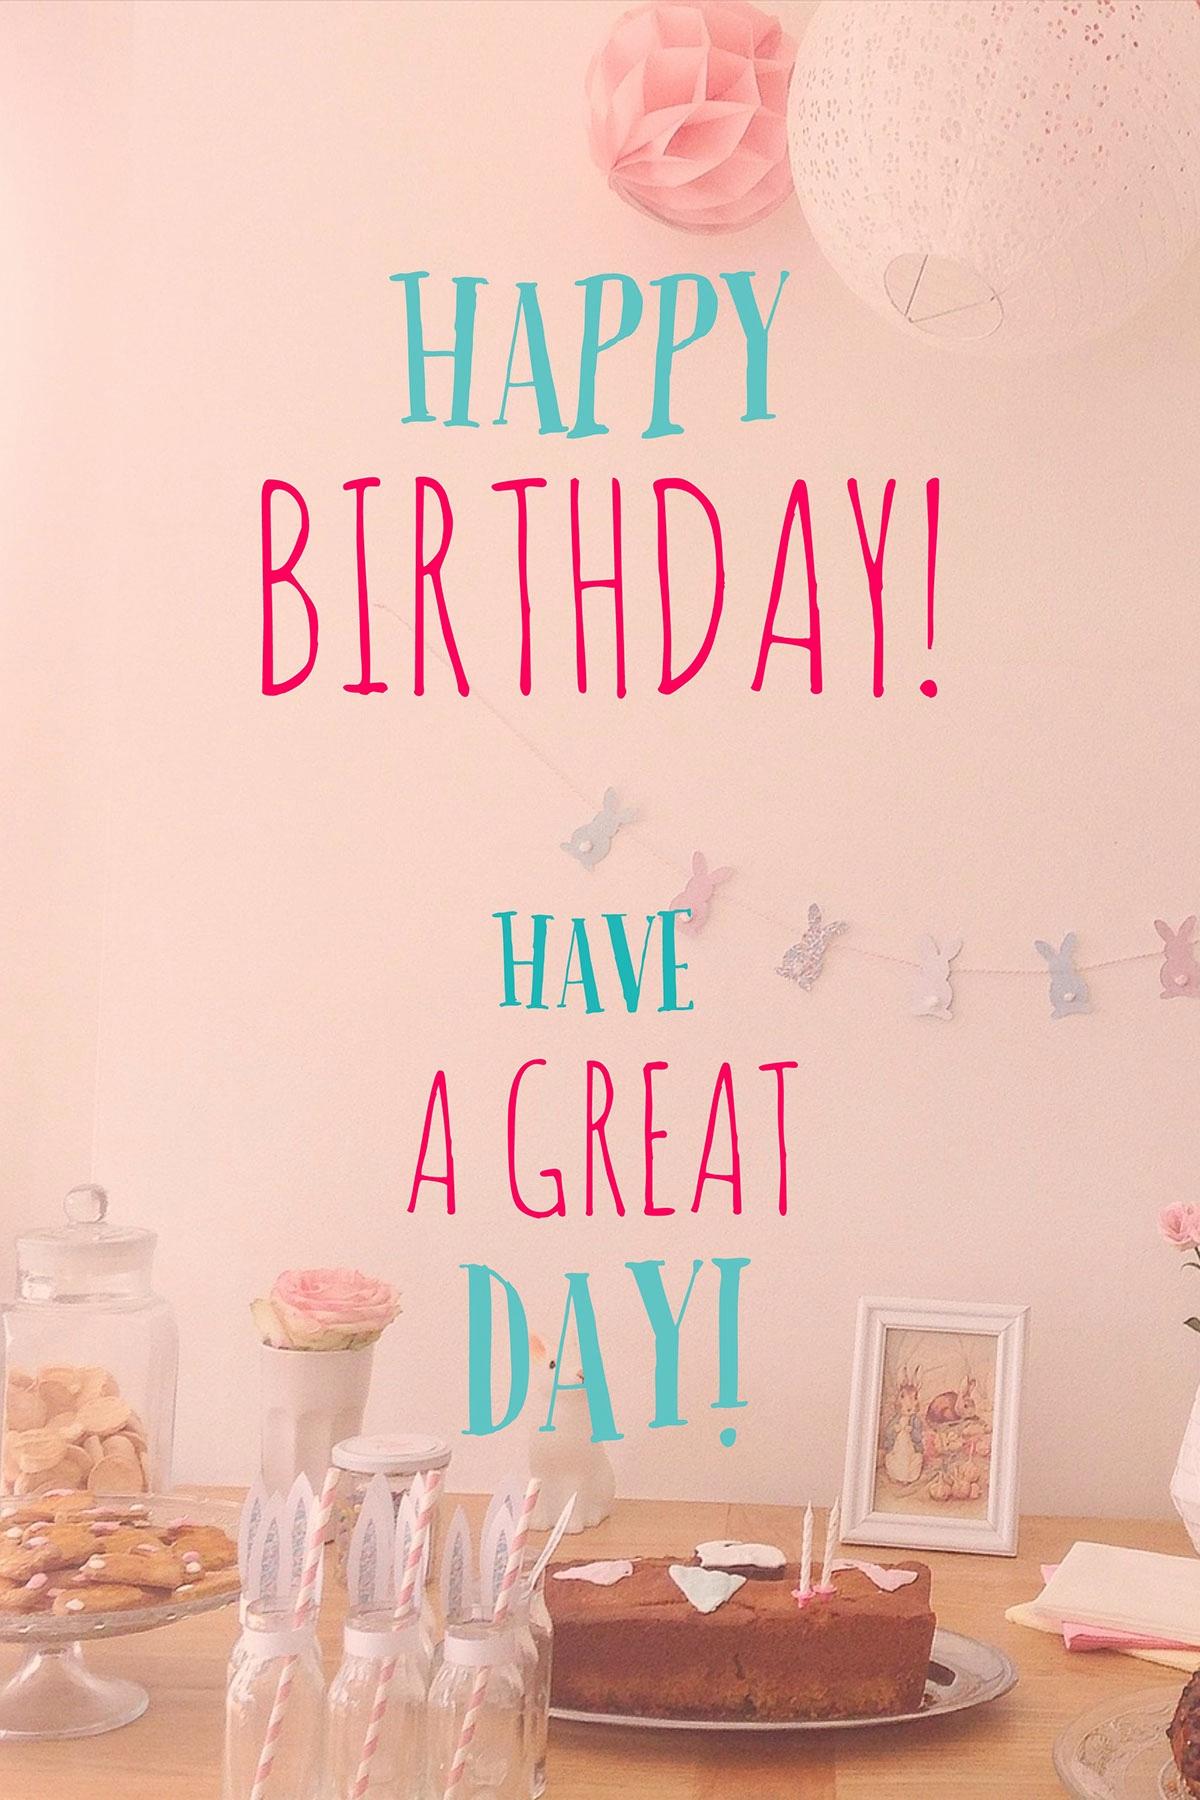 happy birthday greeting card online ; customized-birthday-greeting-cards-online-beautiful-free-line-card-maker-create-custom-greeting-cards-of-customized-birthday-greeting-cards-online